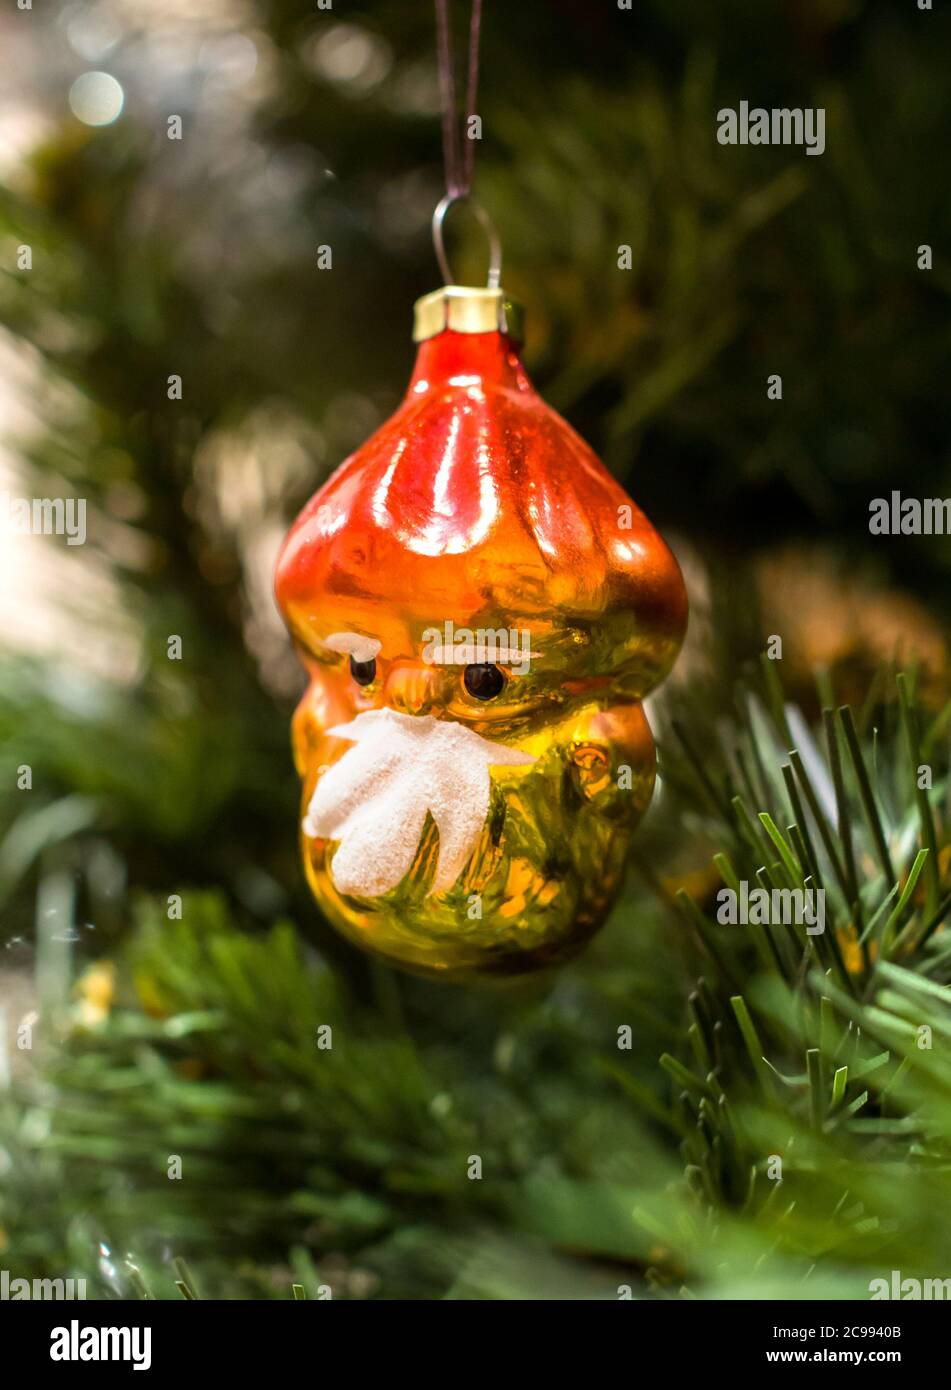 Gnome Christmas Tree Decoration Of The Times Of The Ussr Stock Photo Alamy